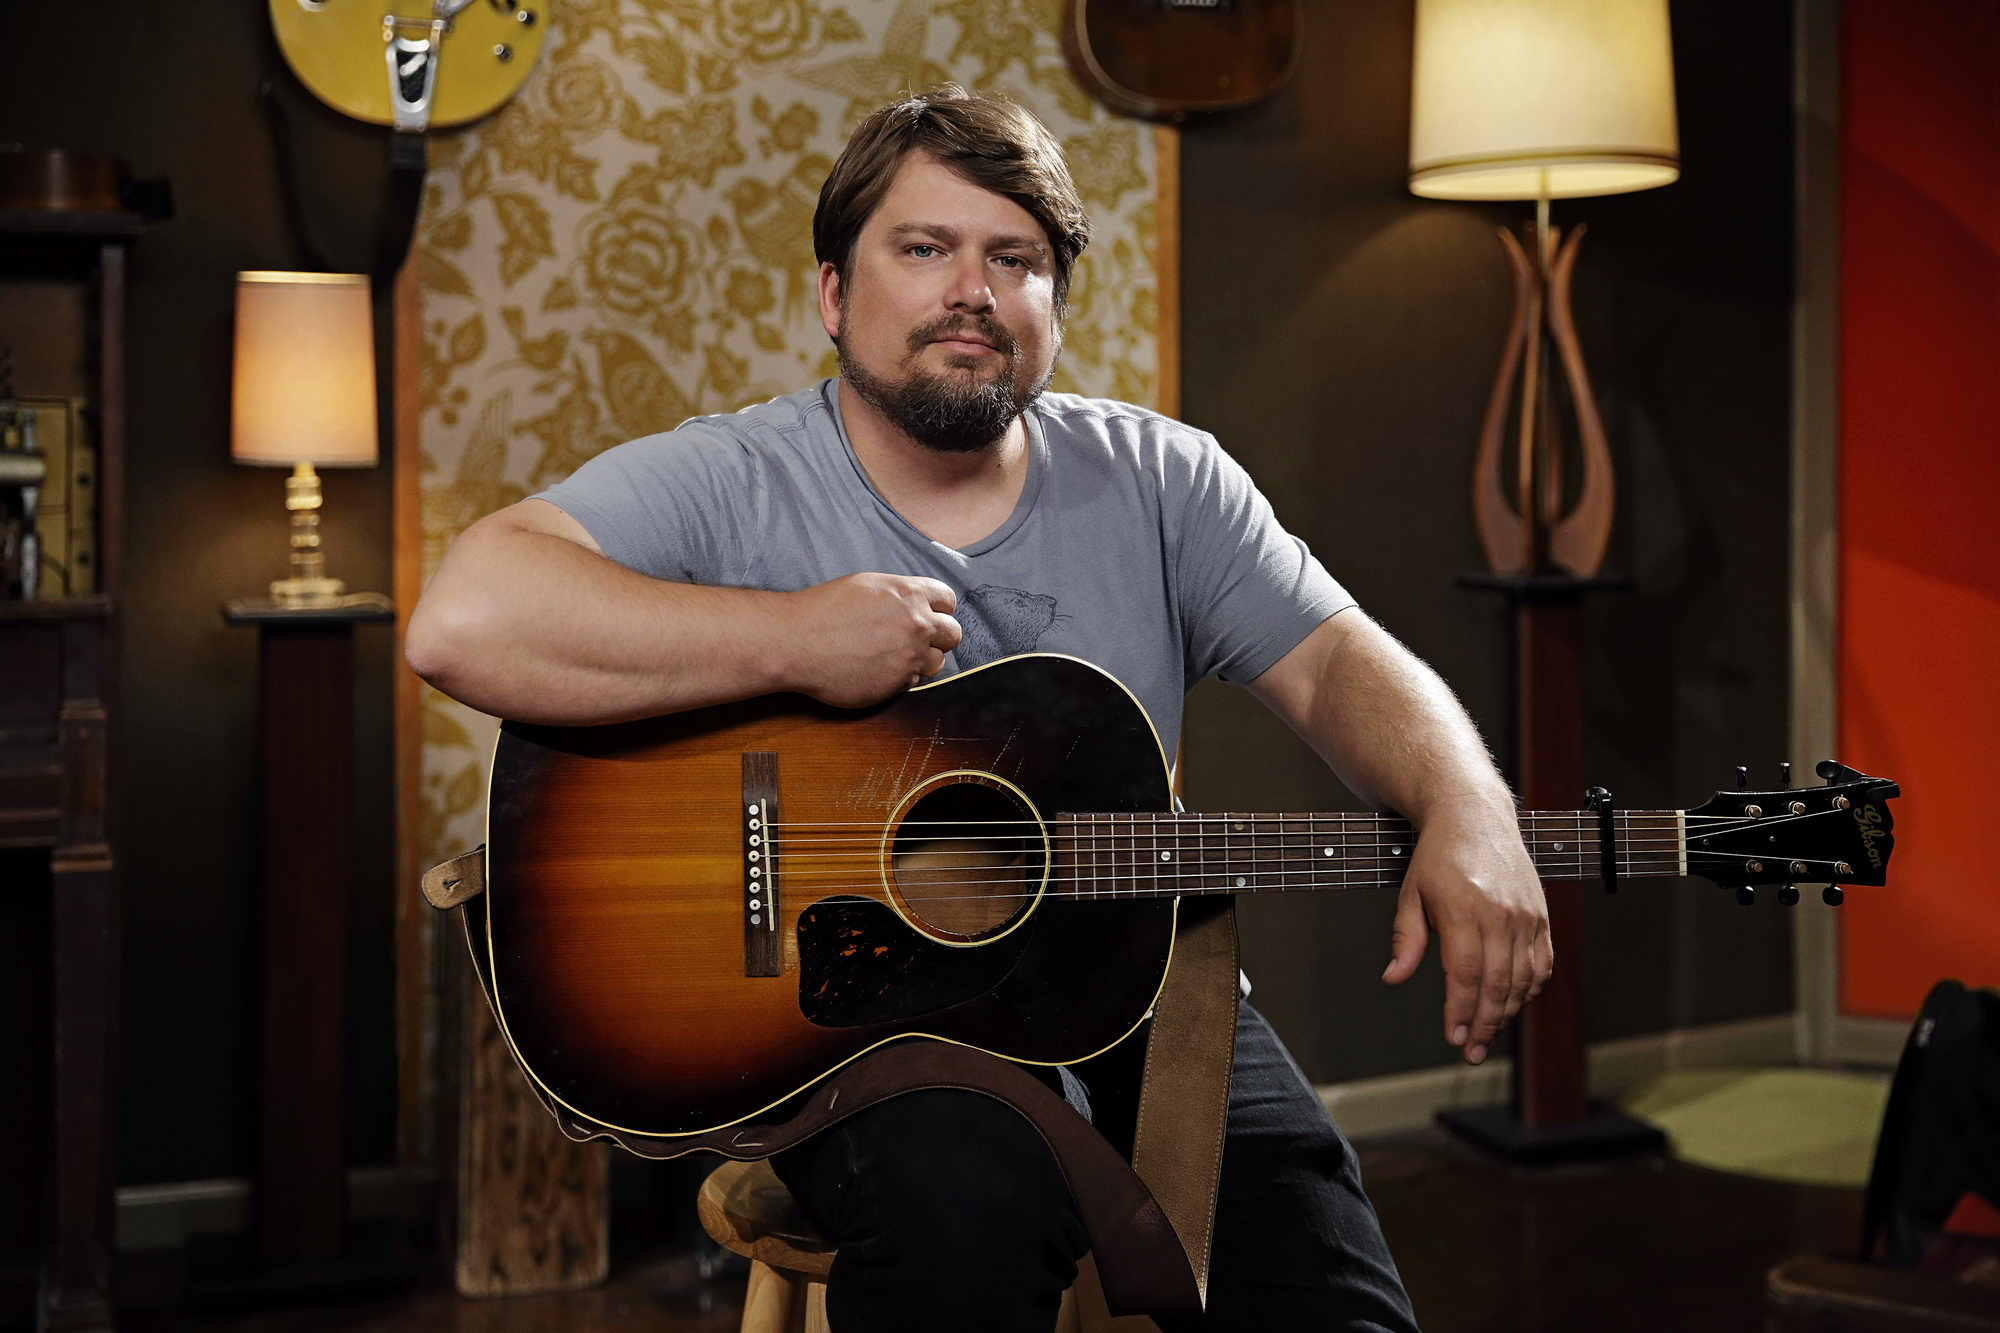 WATCH: D'Addario Presents Guitar Power Acoustic with Sean Watkins and Jackie Greene